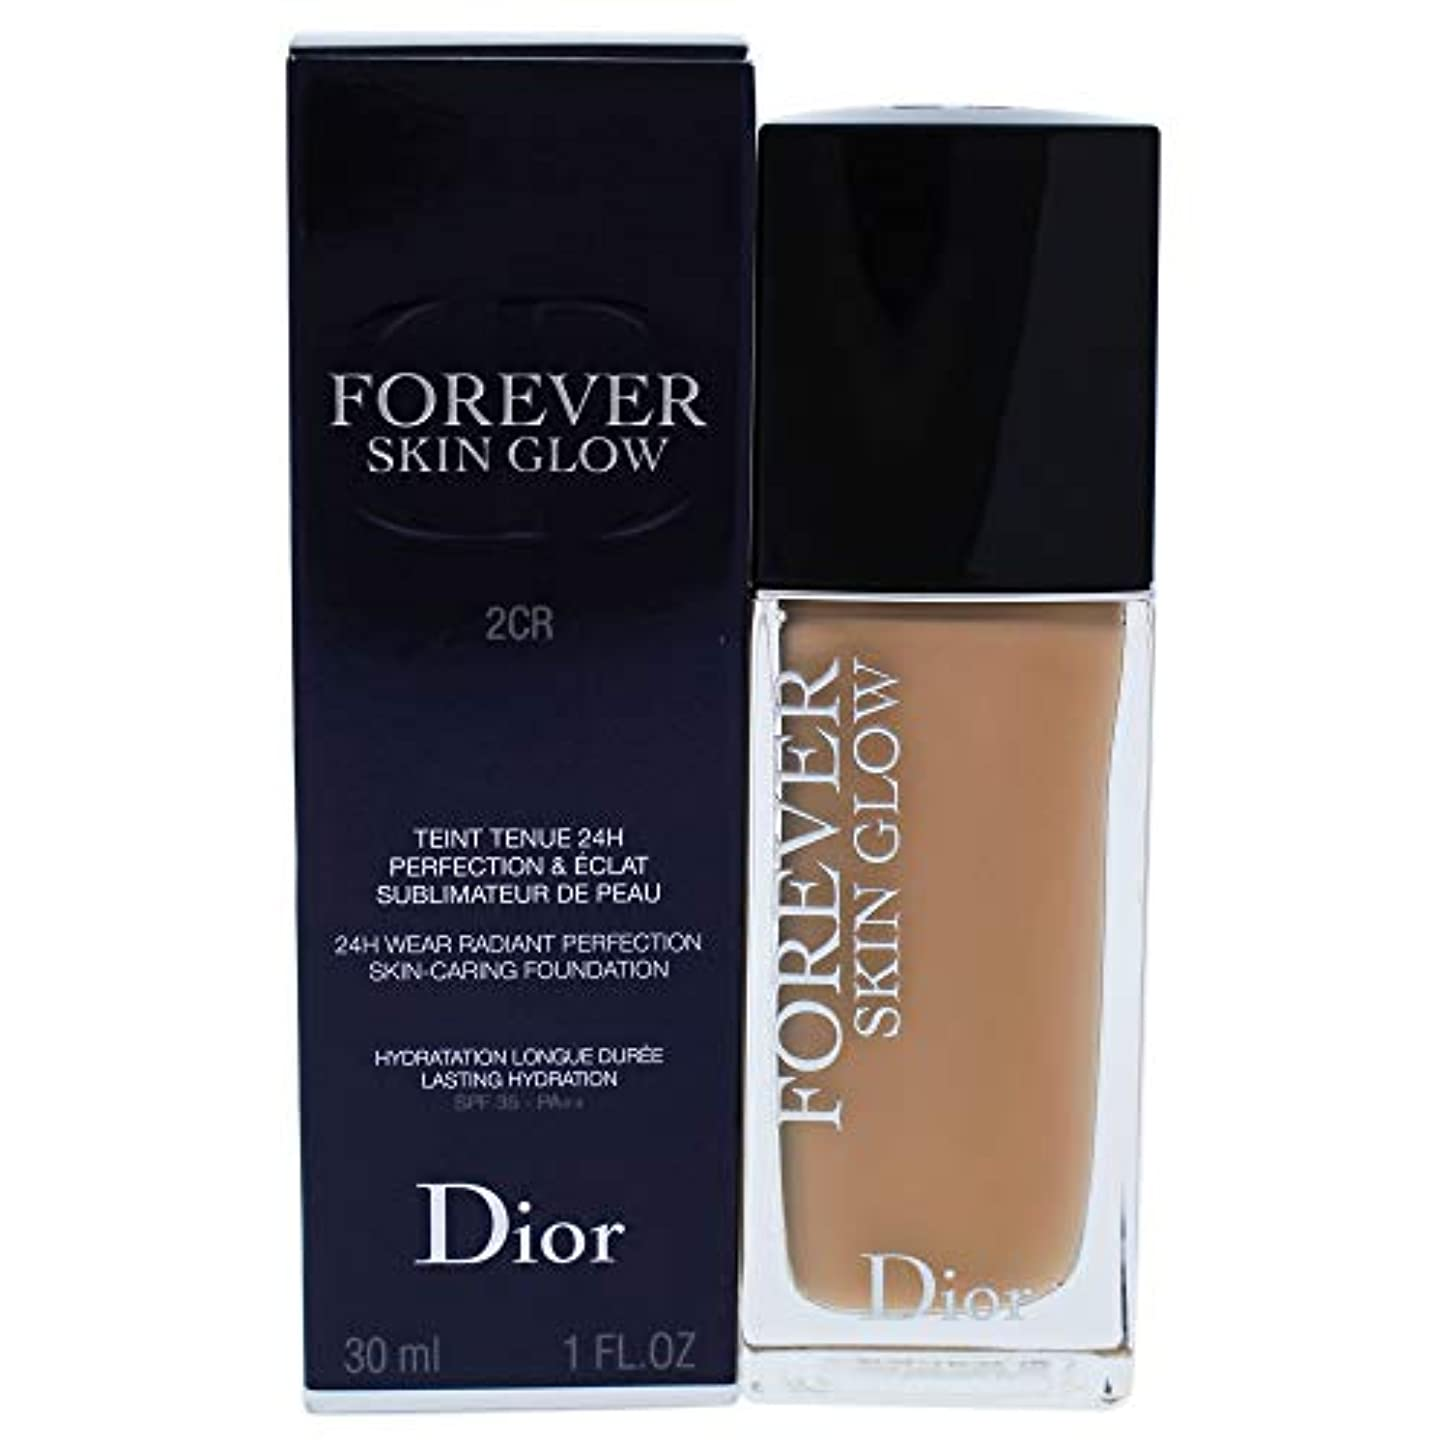 愛撫悲劇頭クリスチャンディオール Dior Forever Skin Glow 24H Wear High Perfection Foundation SPF 35 - # 2CR (Cool Rosy) 30ml/1oz並行輸入品